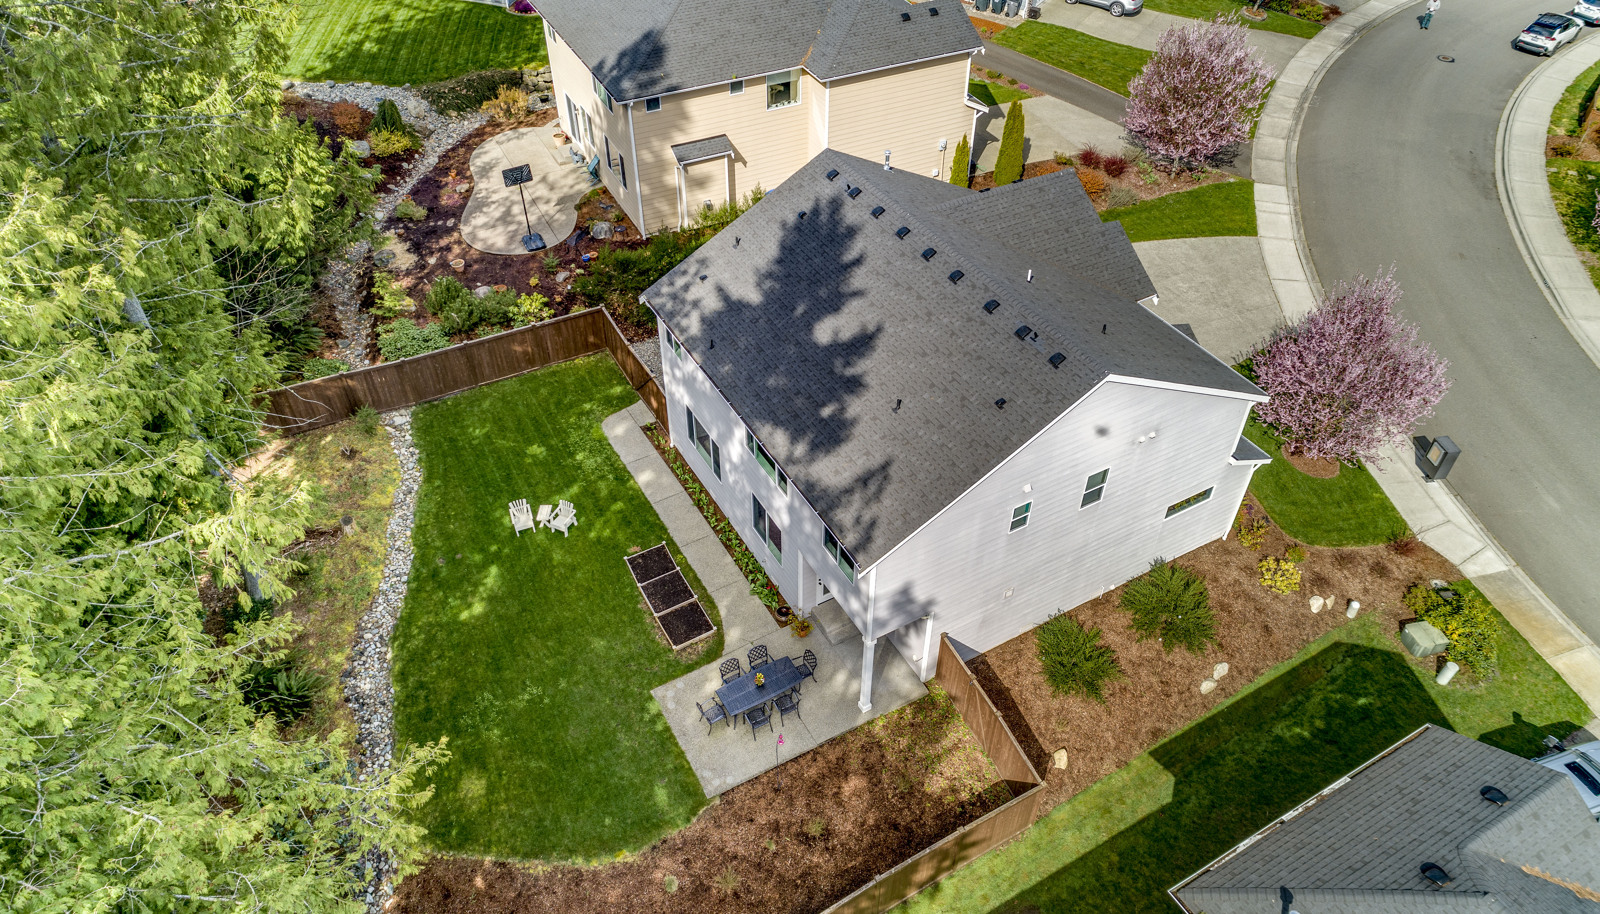 HUGE, private, fully fenced backyard with lush lawn, planter boxes, and your own little forest!